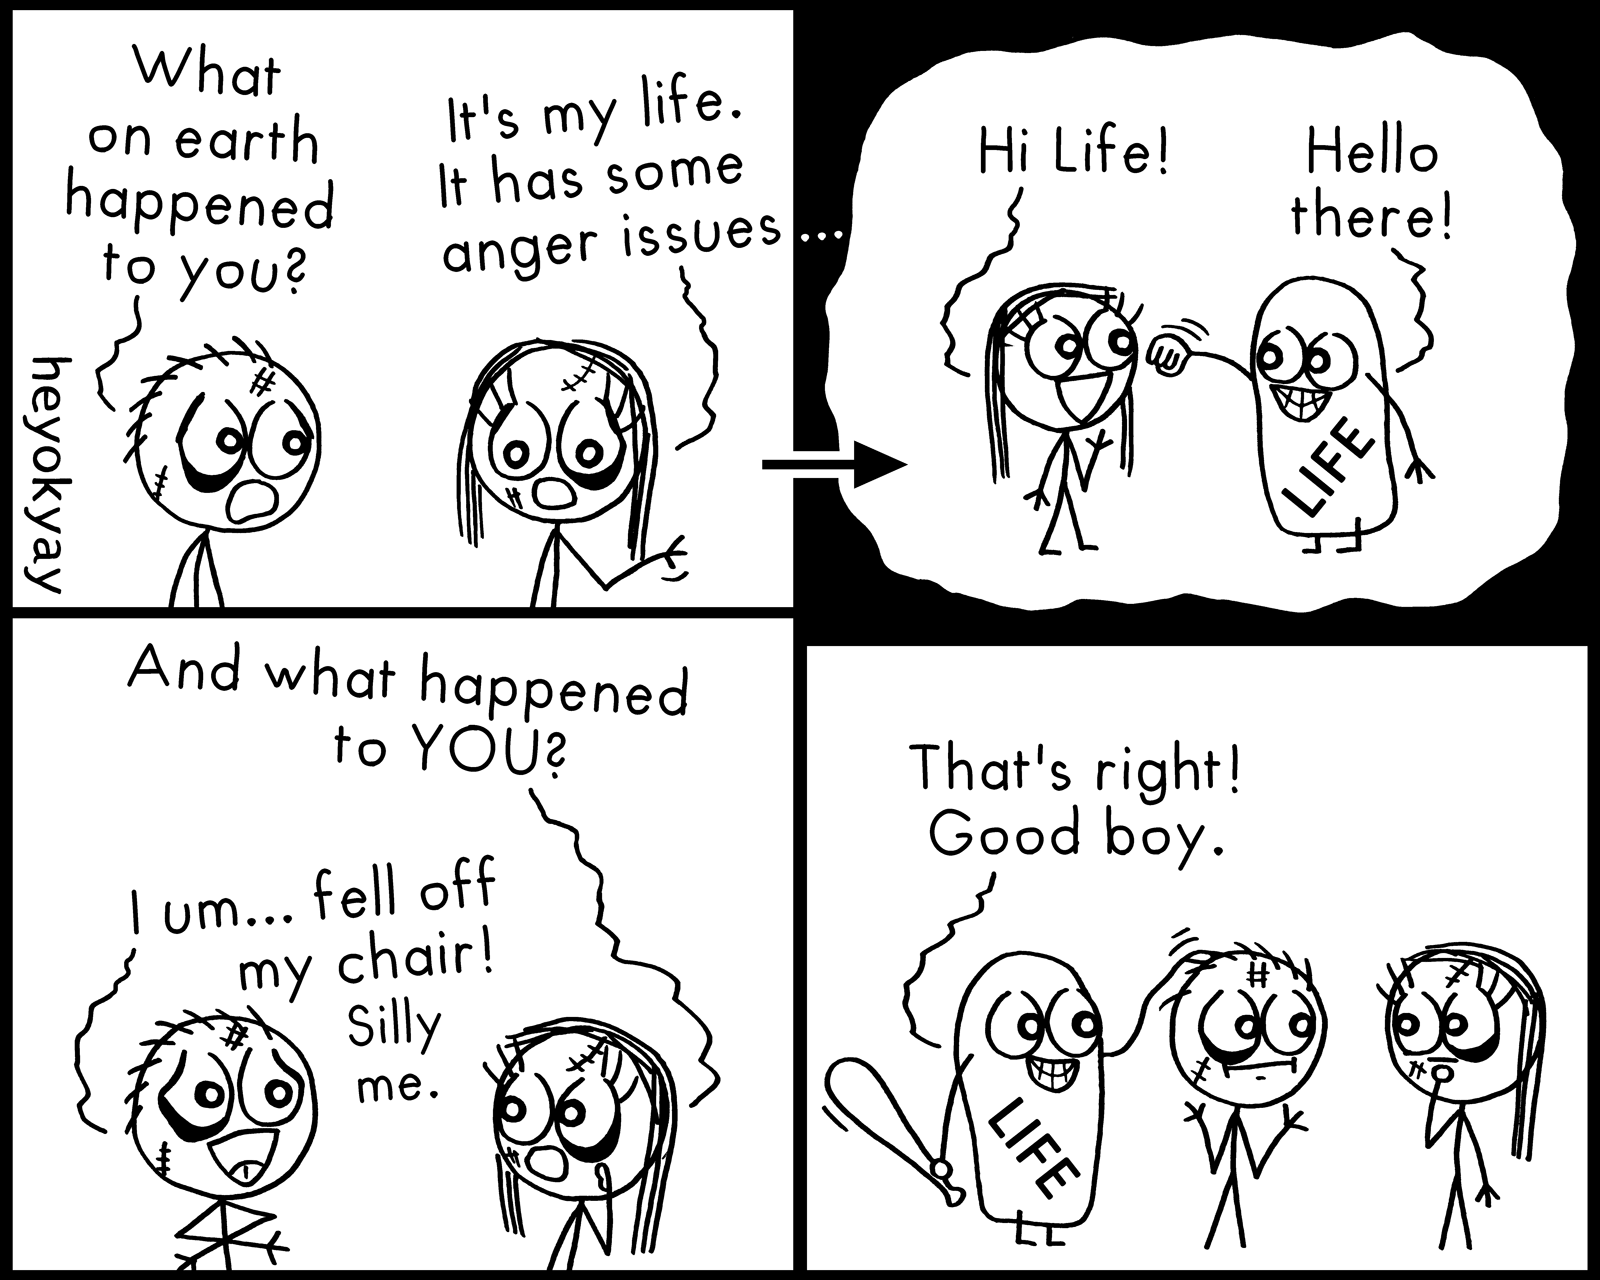 What on earth happened to you? It's my life. It has some anger issues. Hi Life! Hello there! And what happened to you? I um... fell off my chair! Silly me. That's right. Good boy! Violent Life heyokyay comic